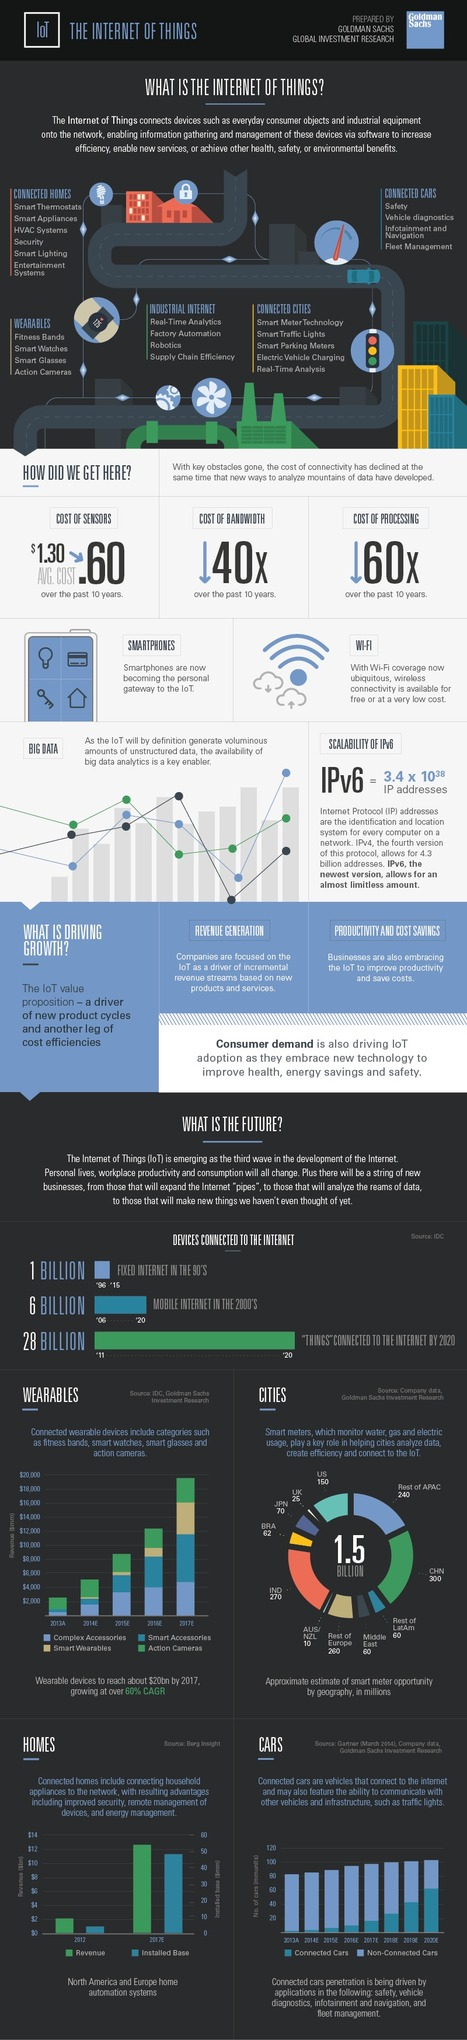 Goldman Sachs | What is the Internet of Things? [Infographic] | L'Univers du Cloud Computing dans le Monde et Ailleurs | Scoop.it